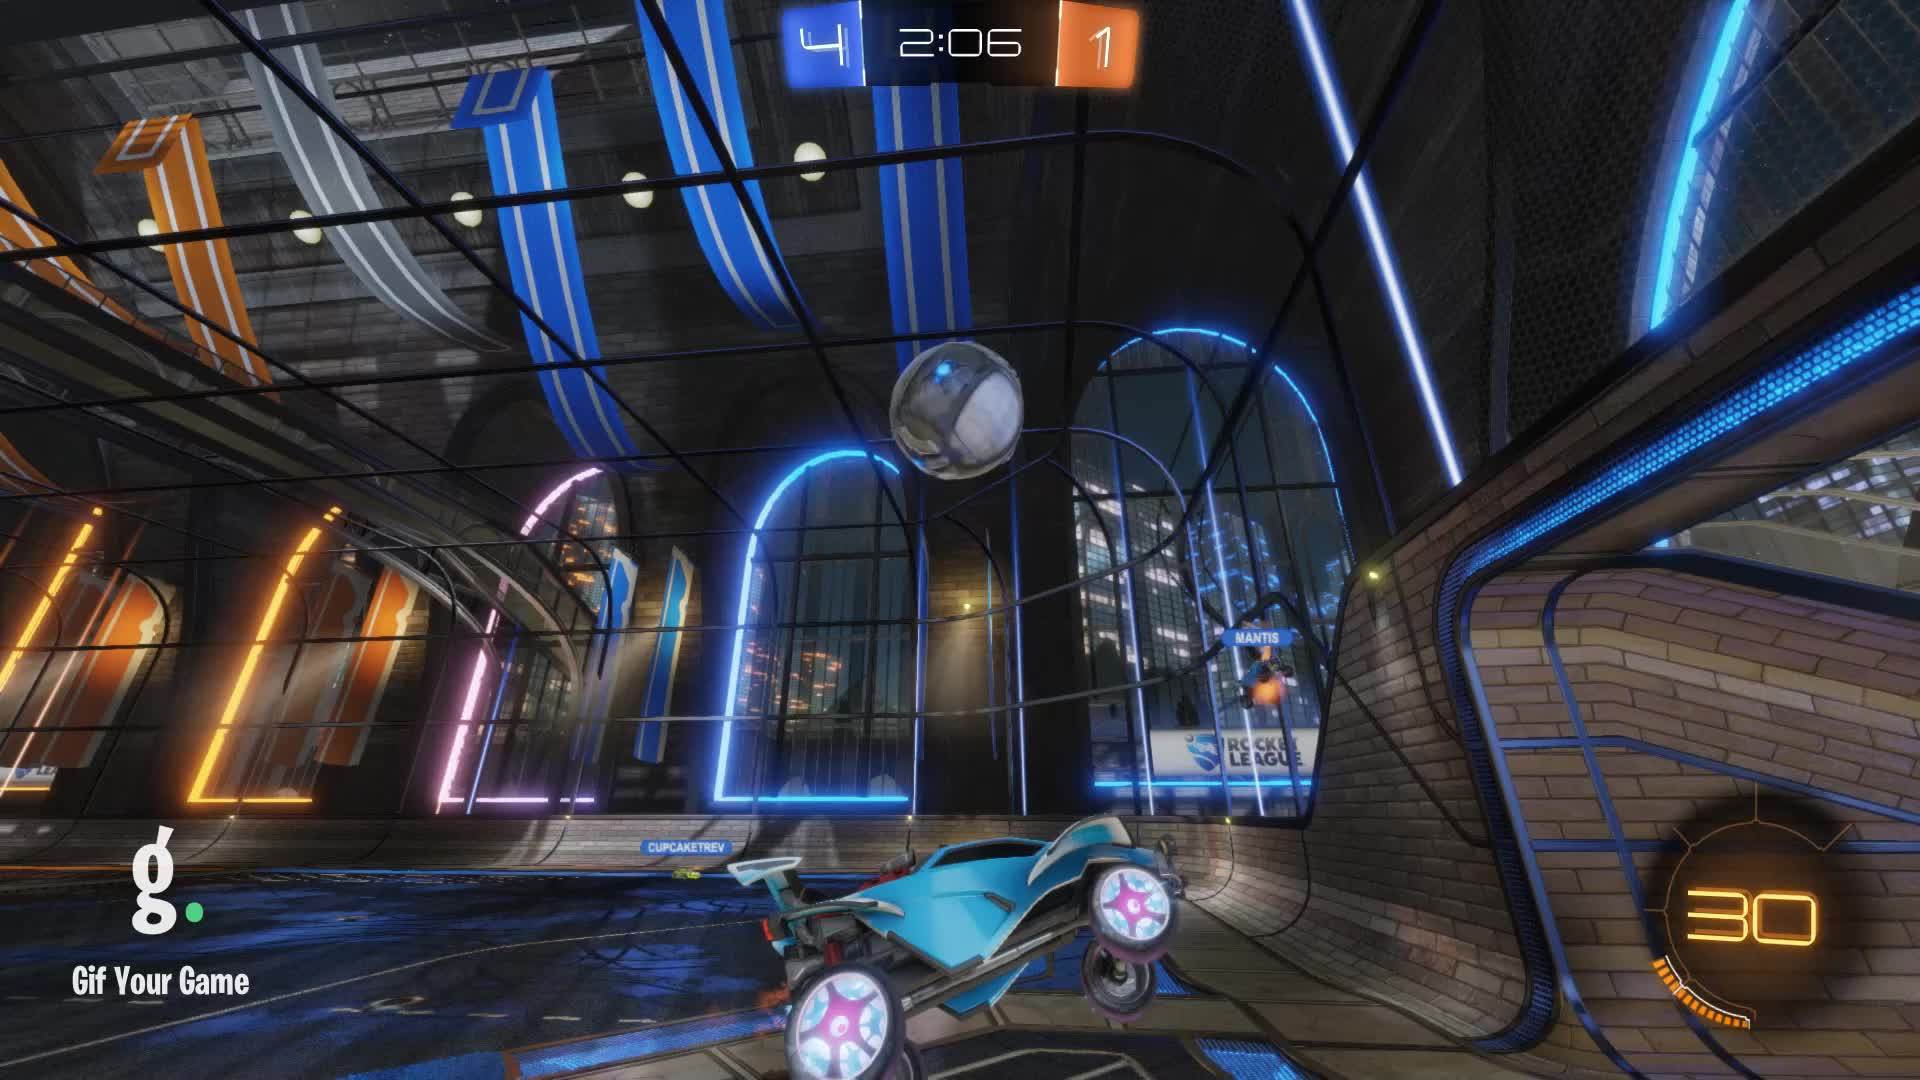 Damned, Gif Your Game, GifYourGame, Goal, Rocket League, RocketLeague, Goal 6: Bastard(nl) GIFs